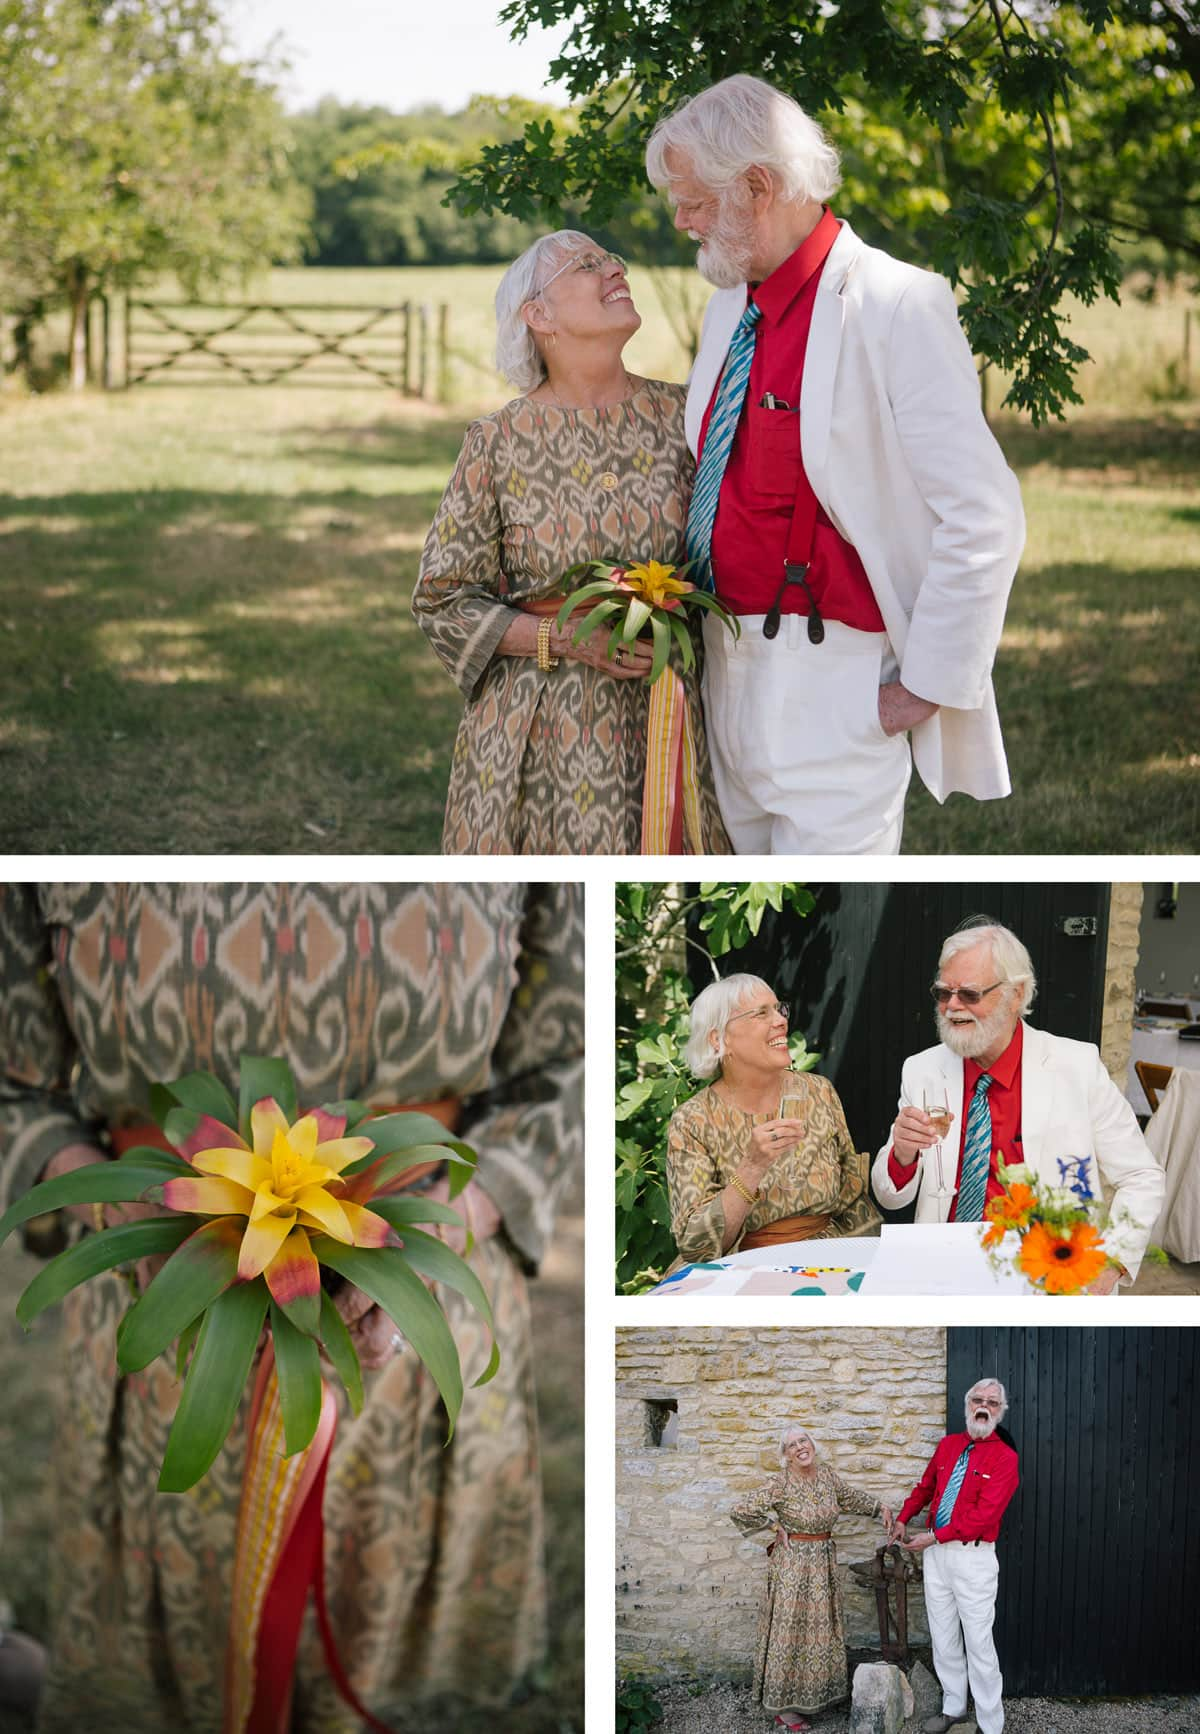 Collage of images of bride and groom together at their artistic safari themed wedding